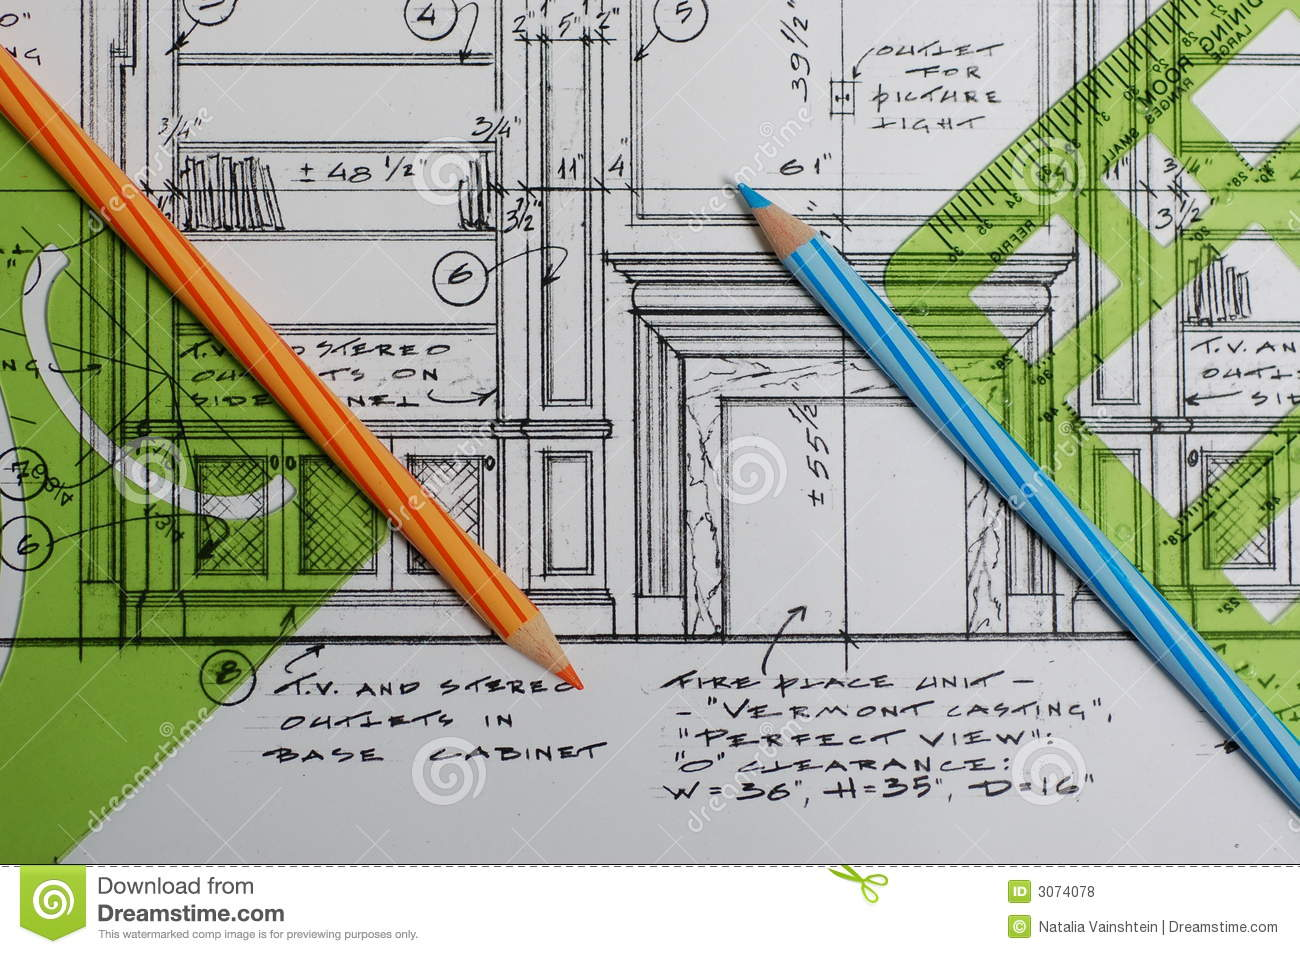 Interior design drawings royalty free stock photos image for Image of interior design